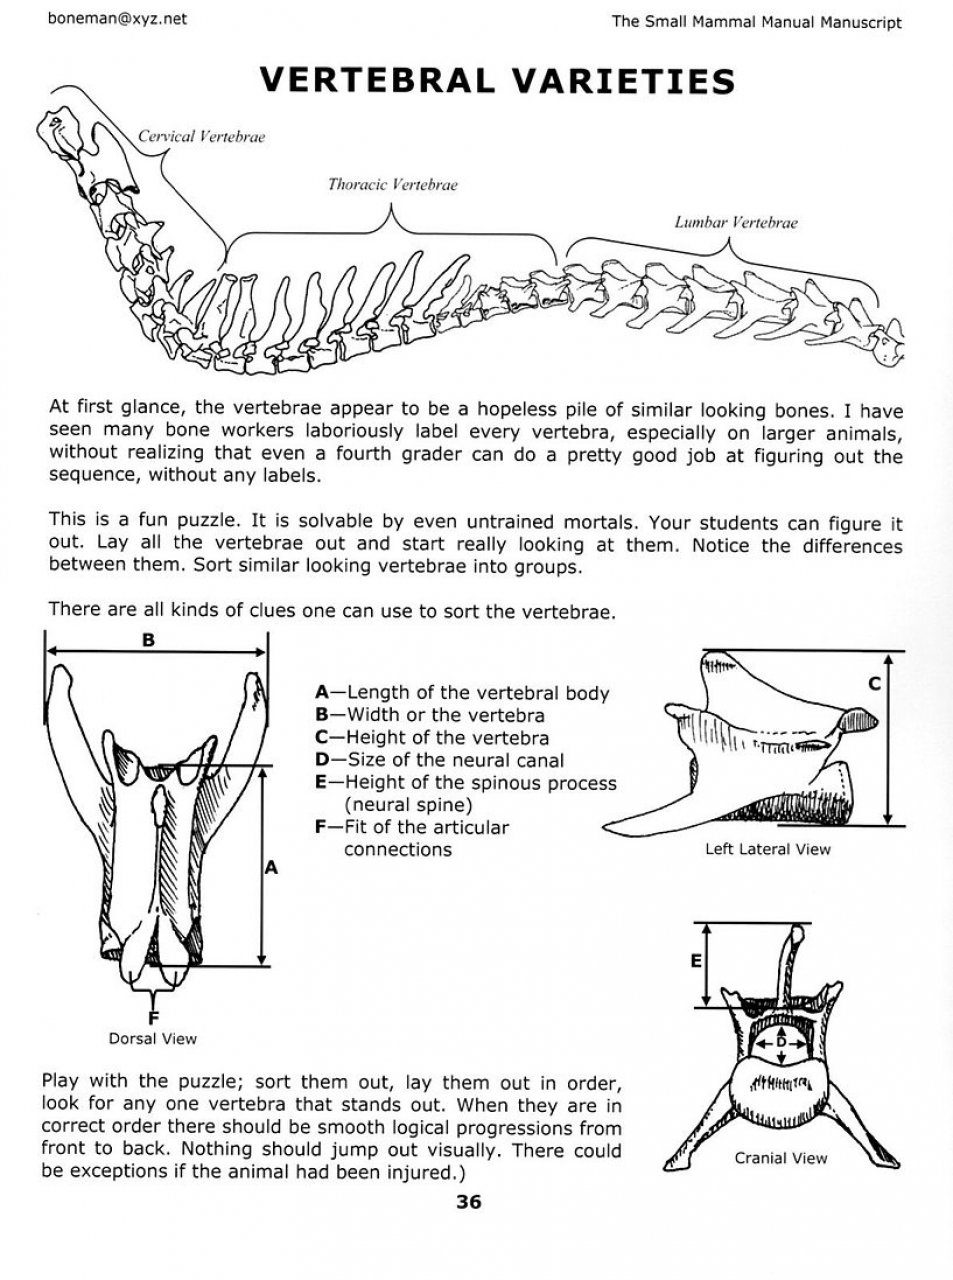 Humerus Bone Manual Guide